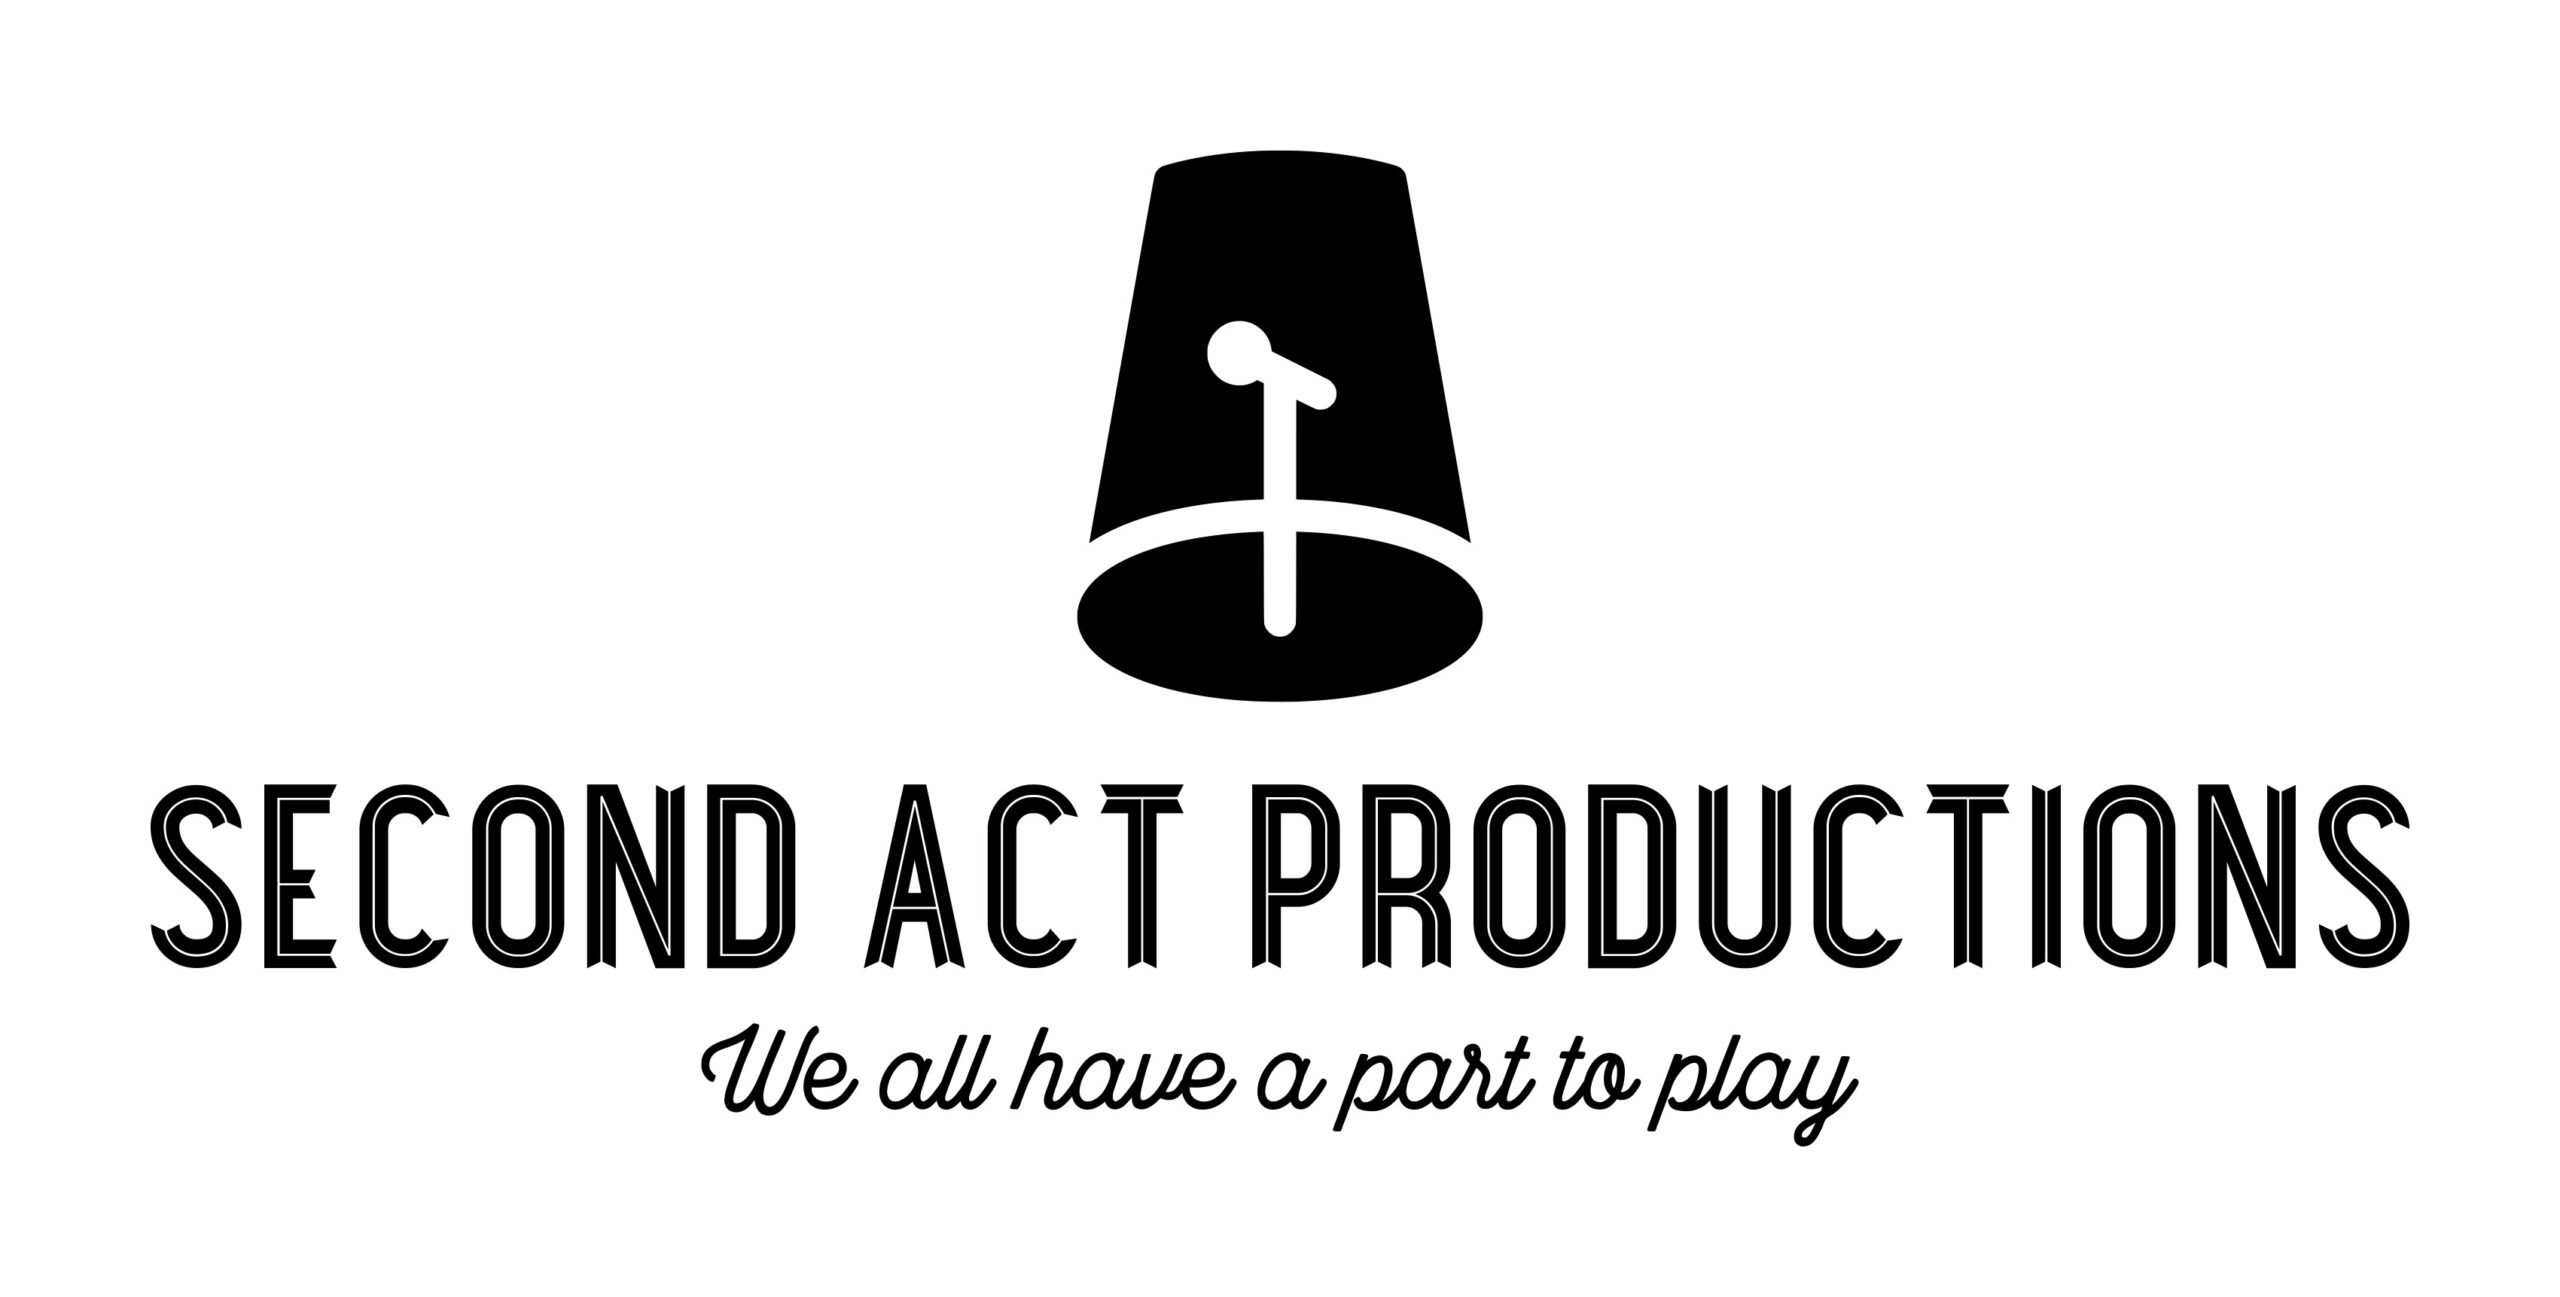 Second Act Productions logo